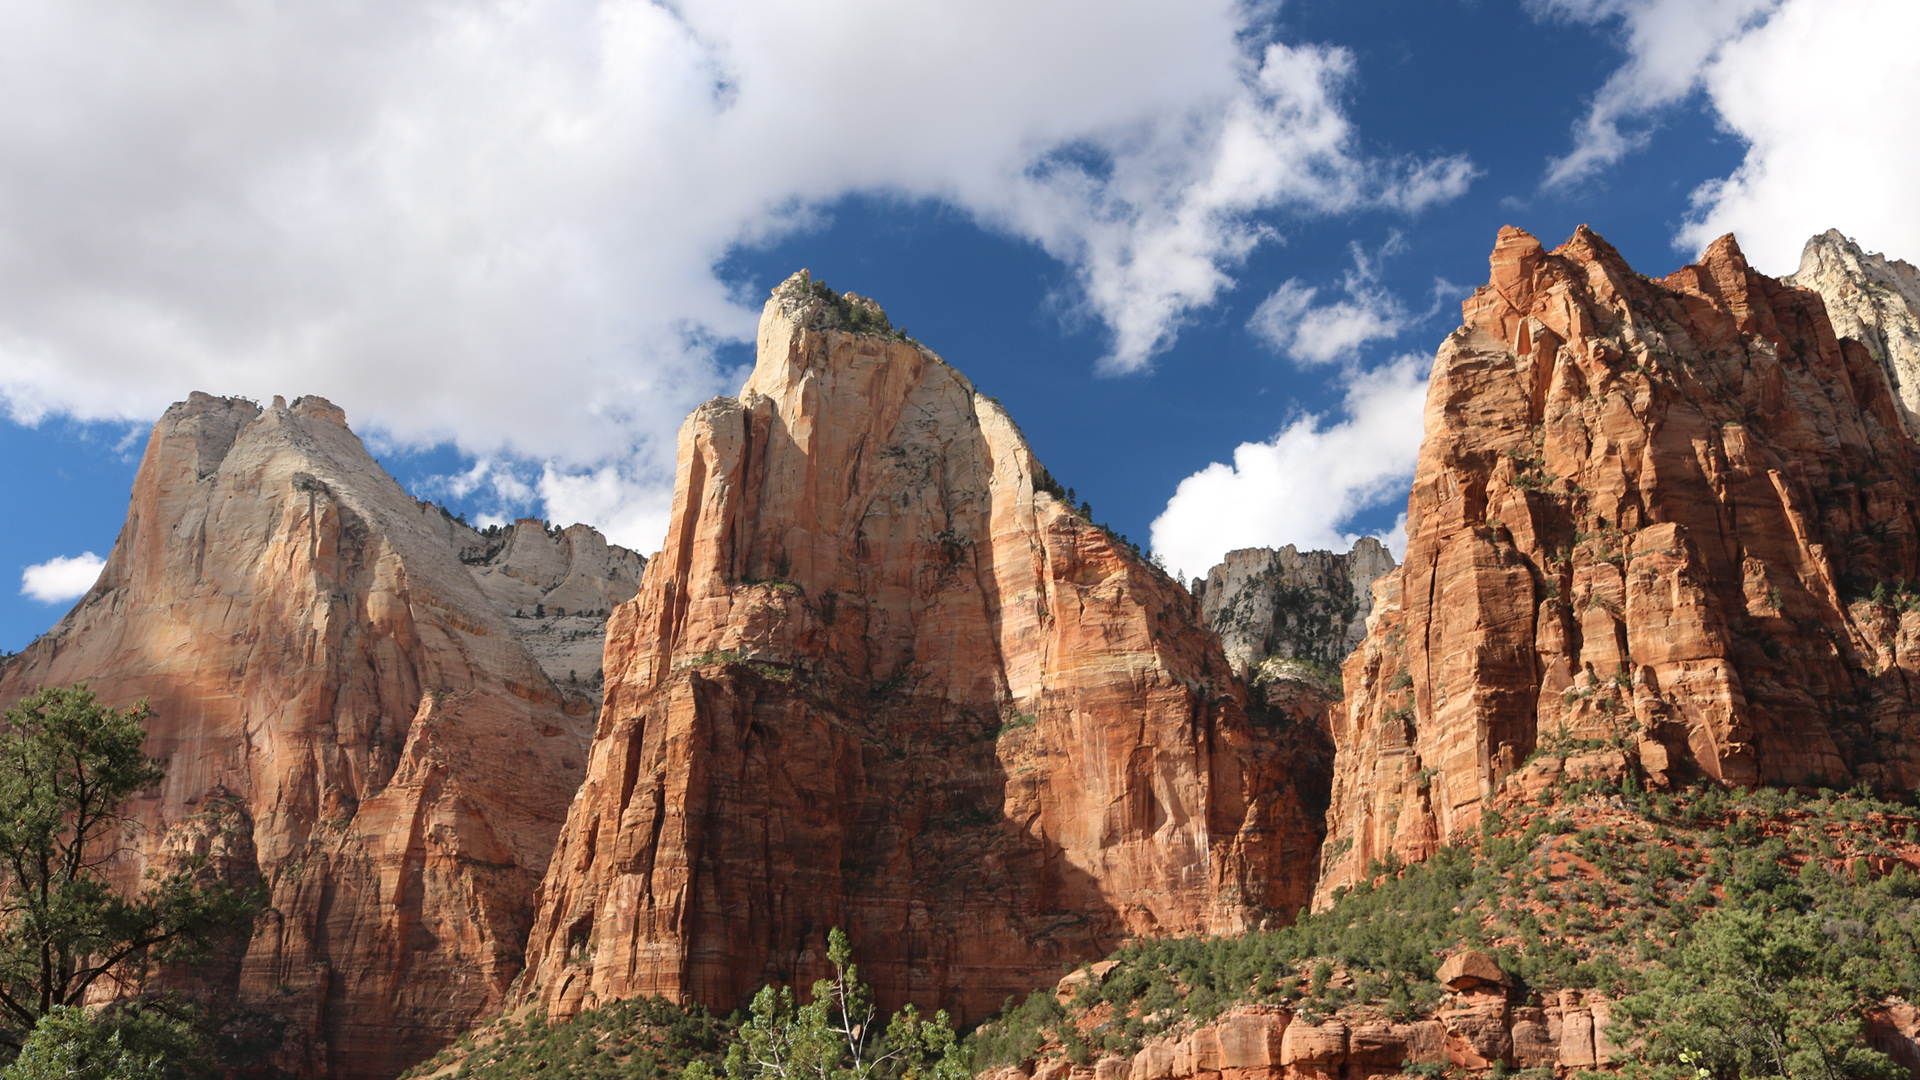 Zion National Park The Three Patriarchs 1074690 Hd Wallpaper